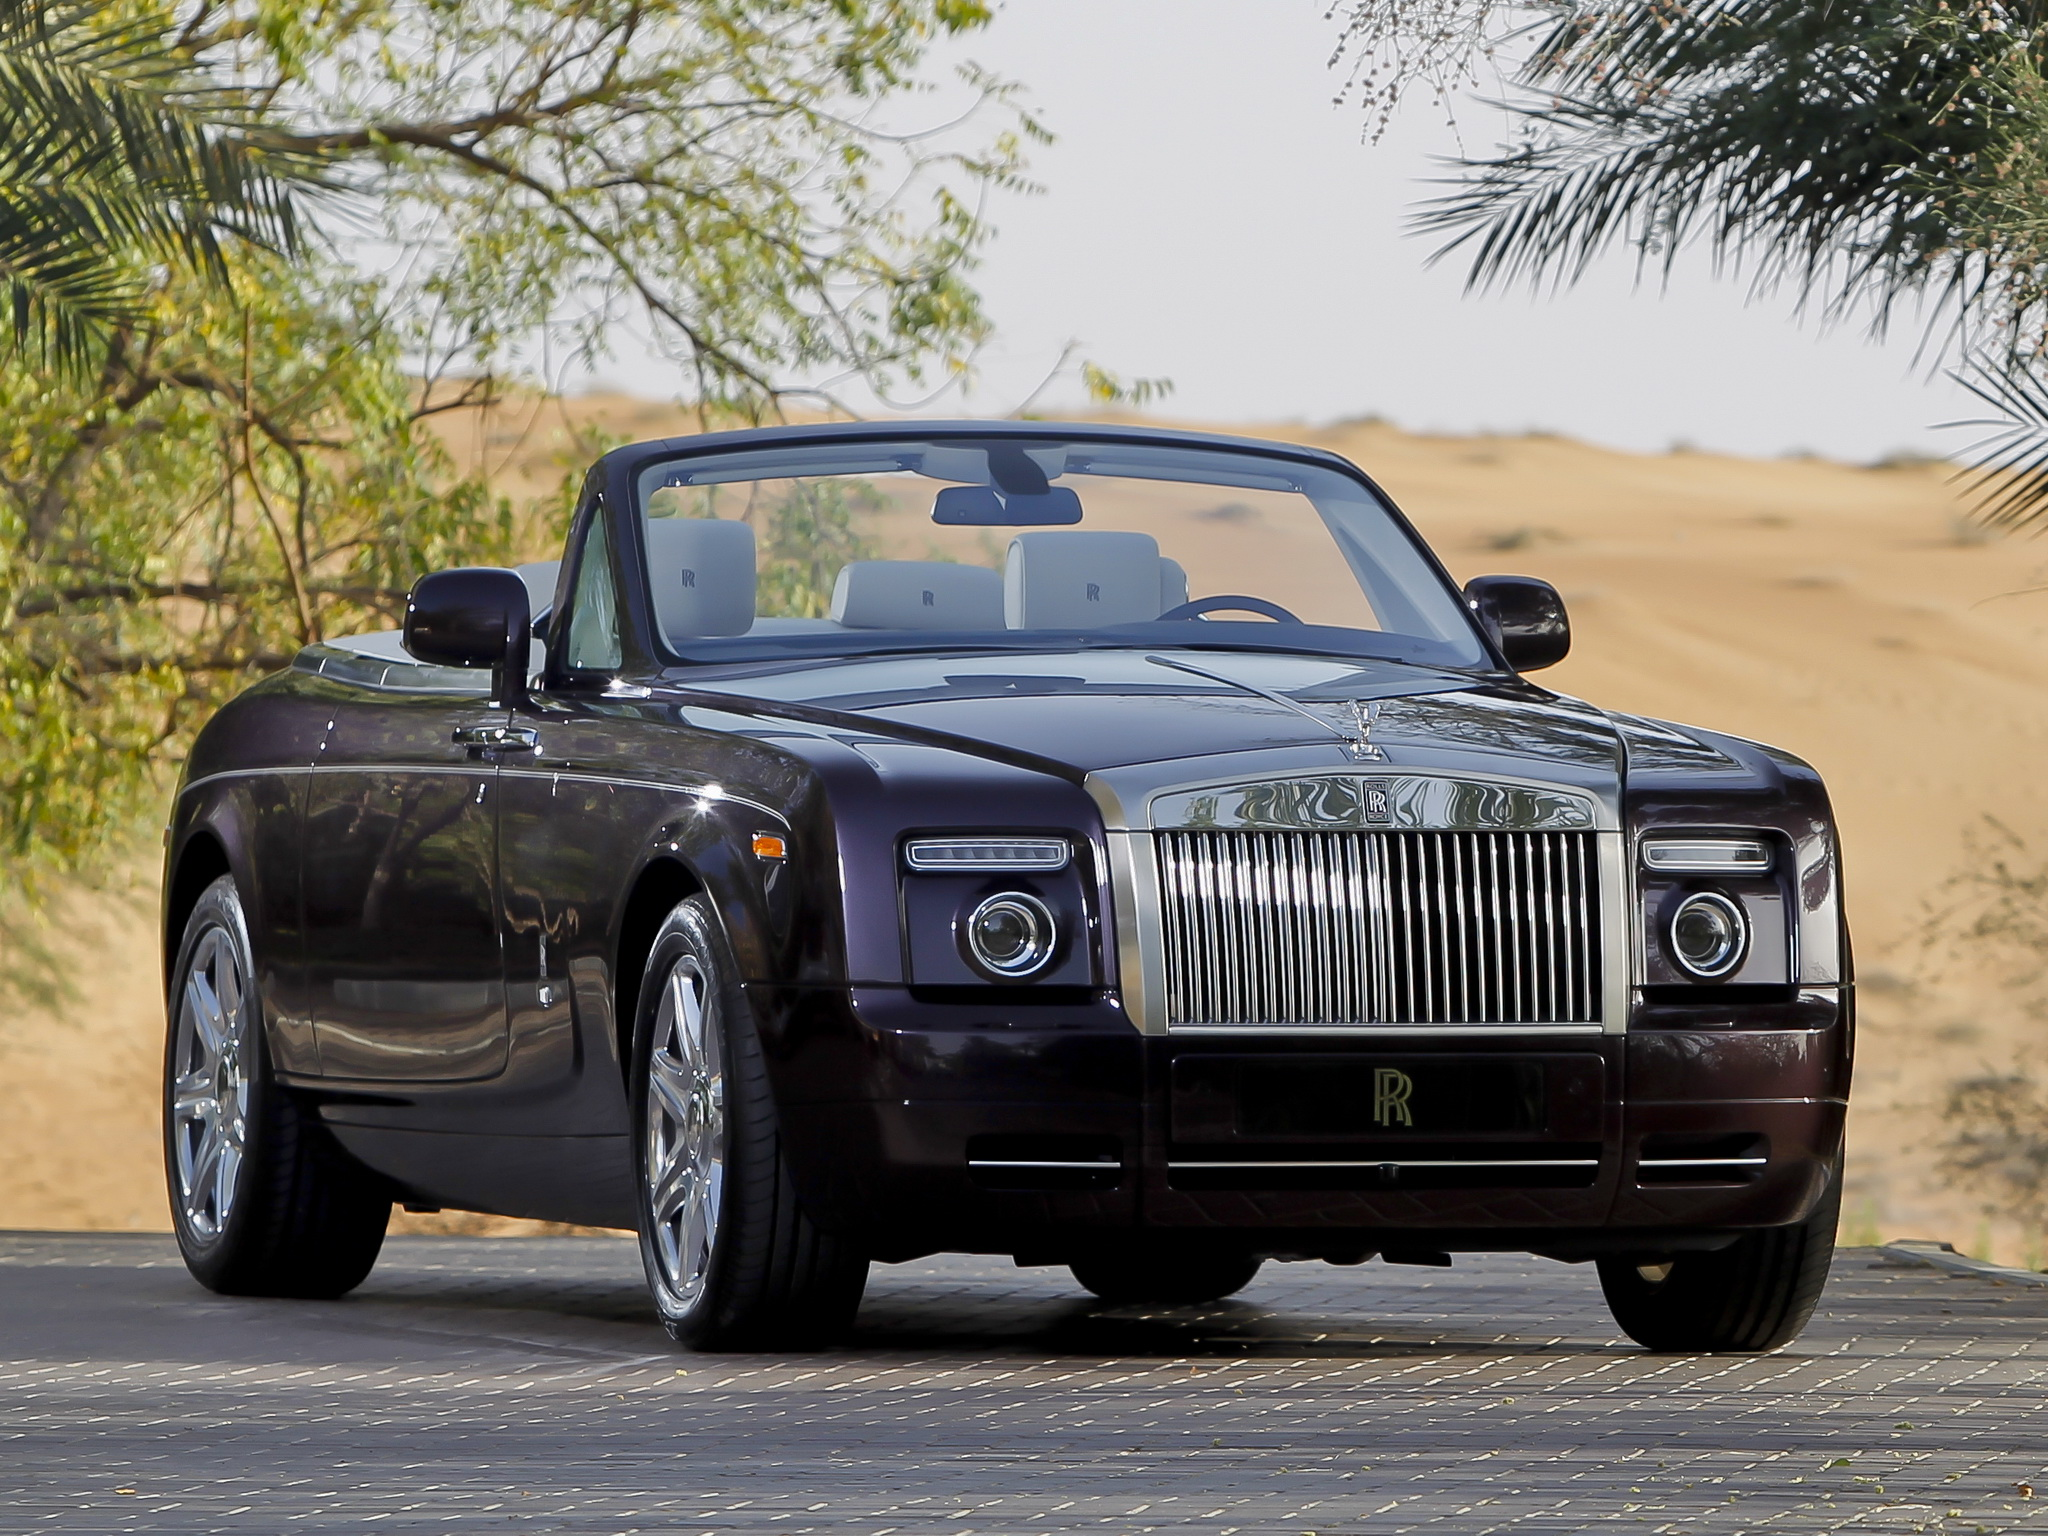 2008 Rolls Royce Phantom Drophead Coupe #9